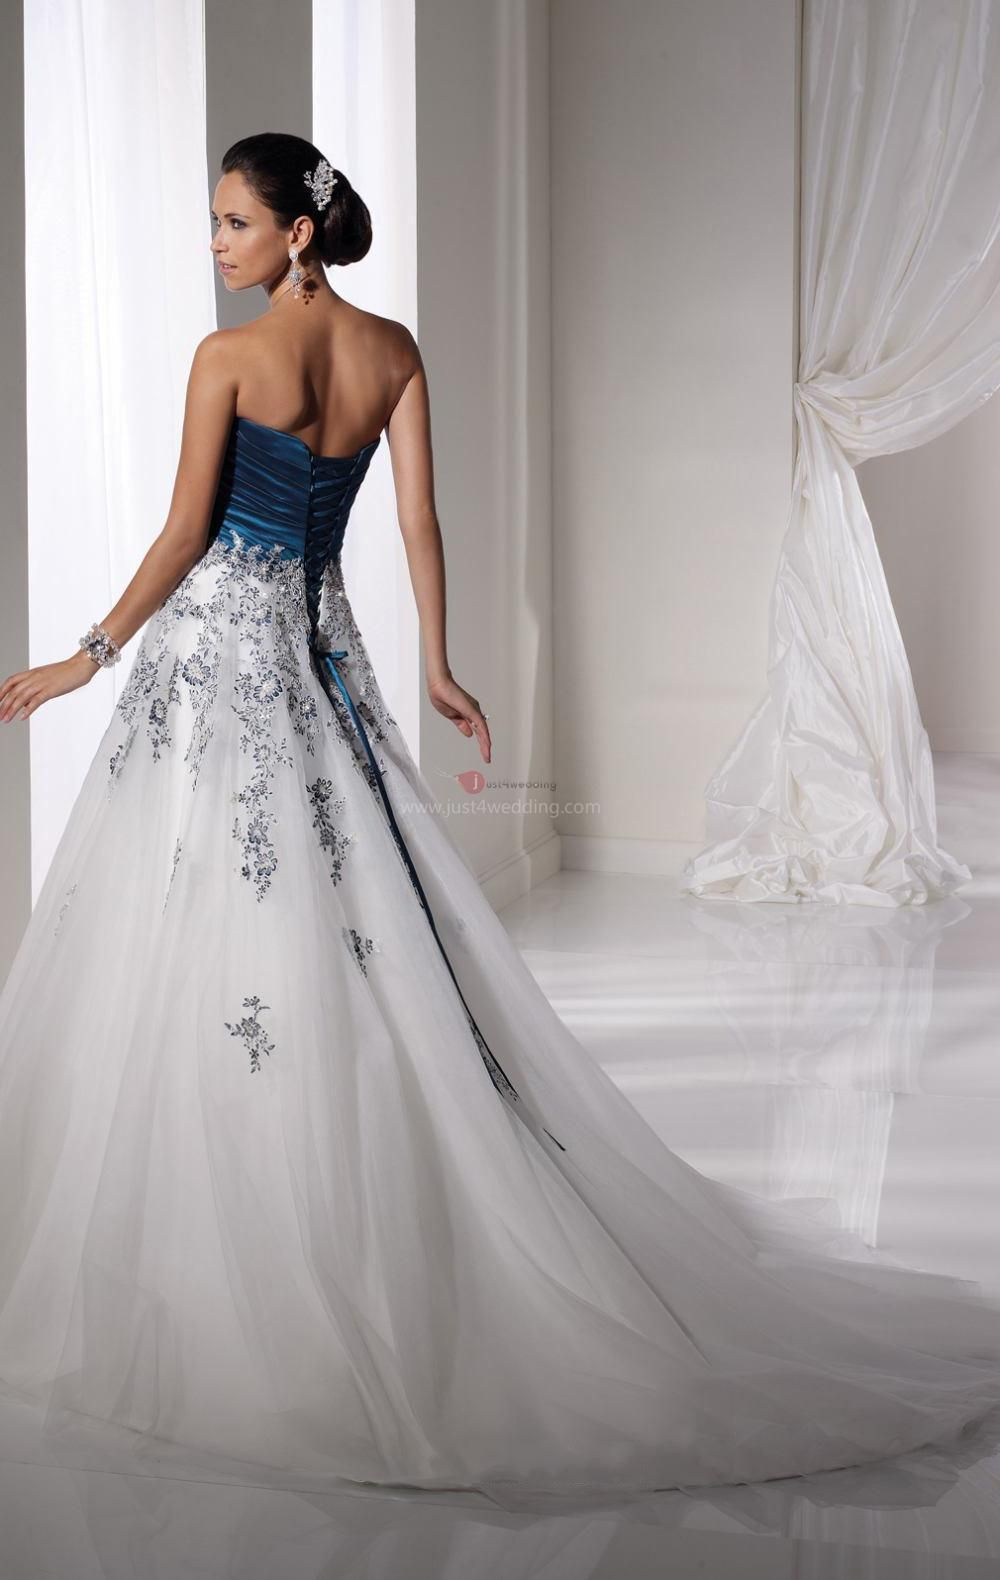 White and blue wedding dress  weddingdressesblueandwhitetallwhiteandblueweddingdress